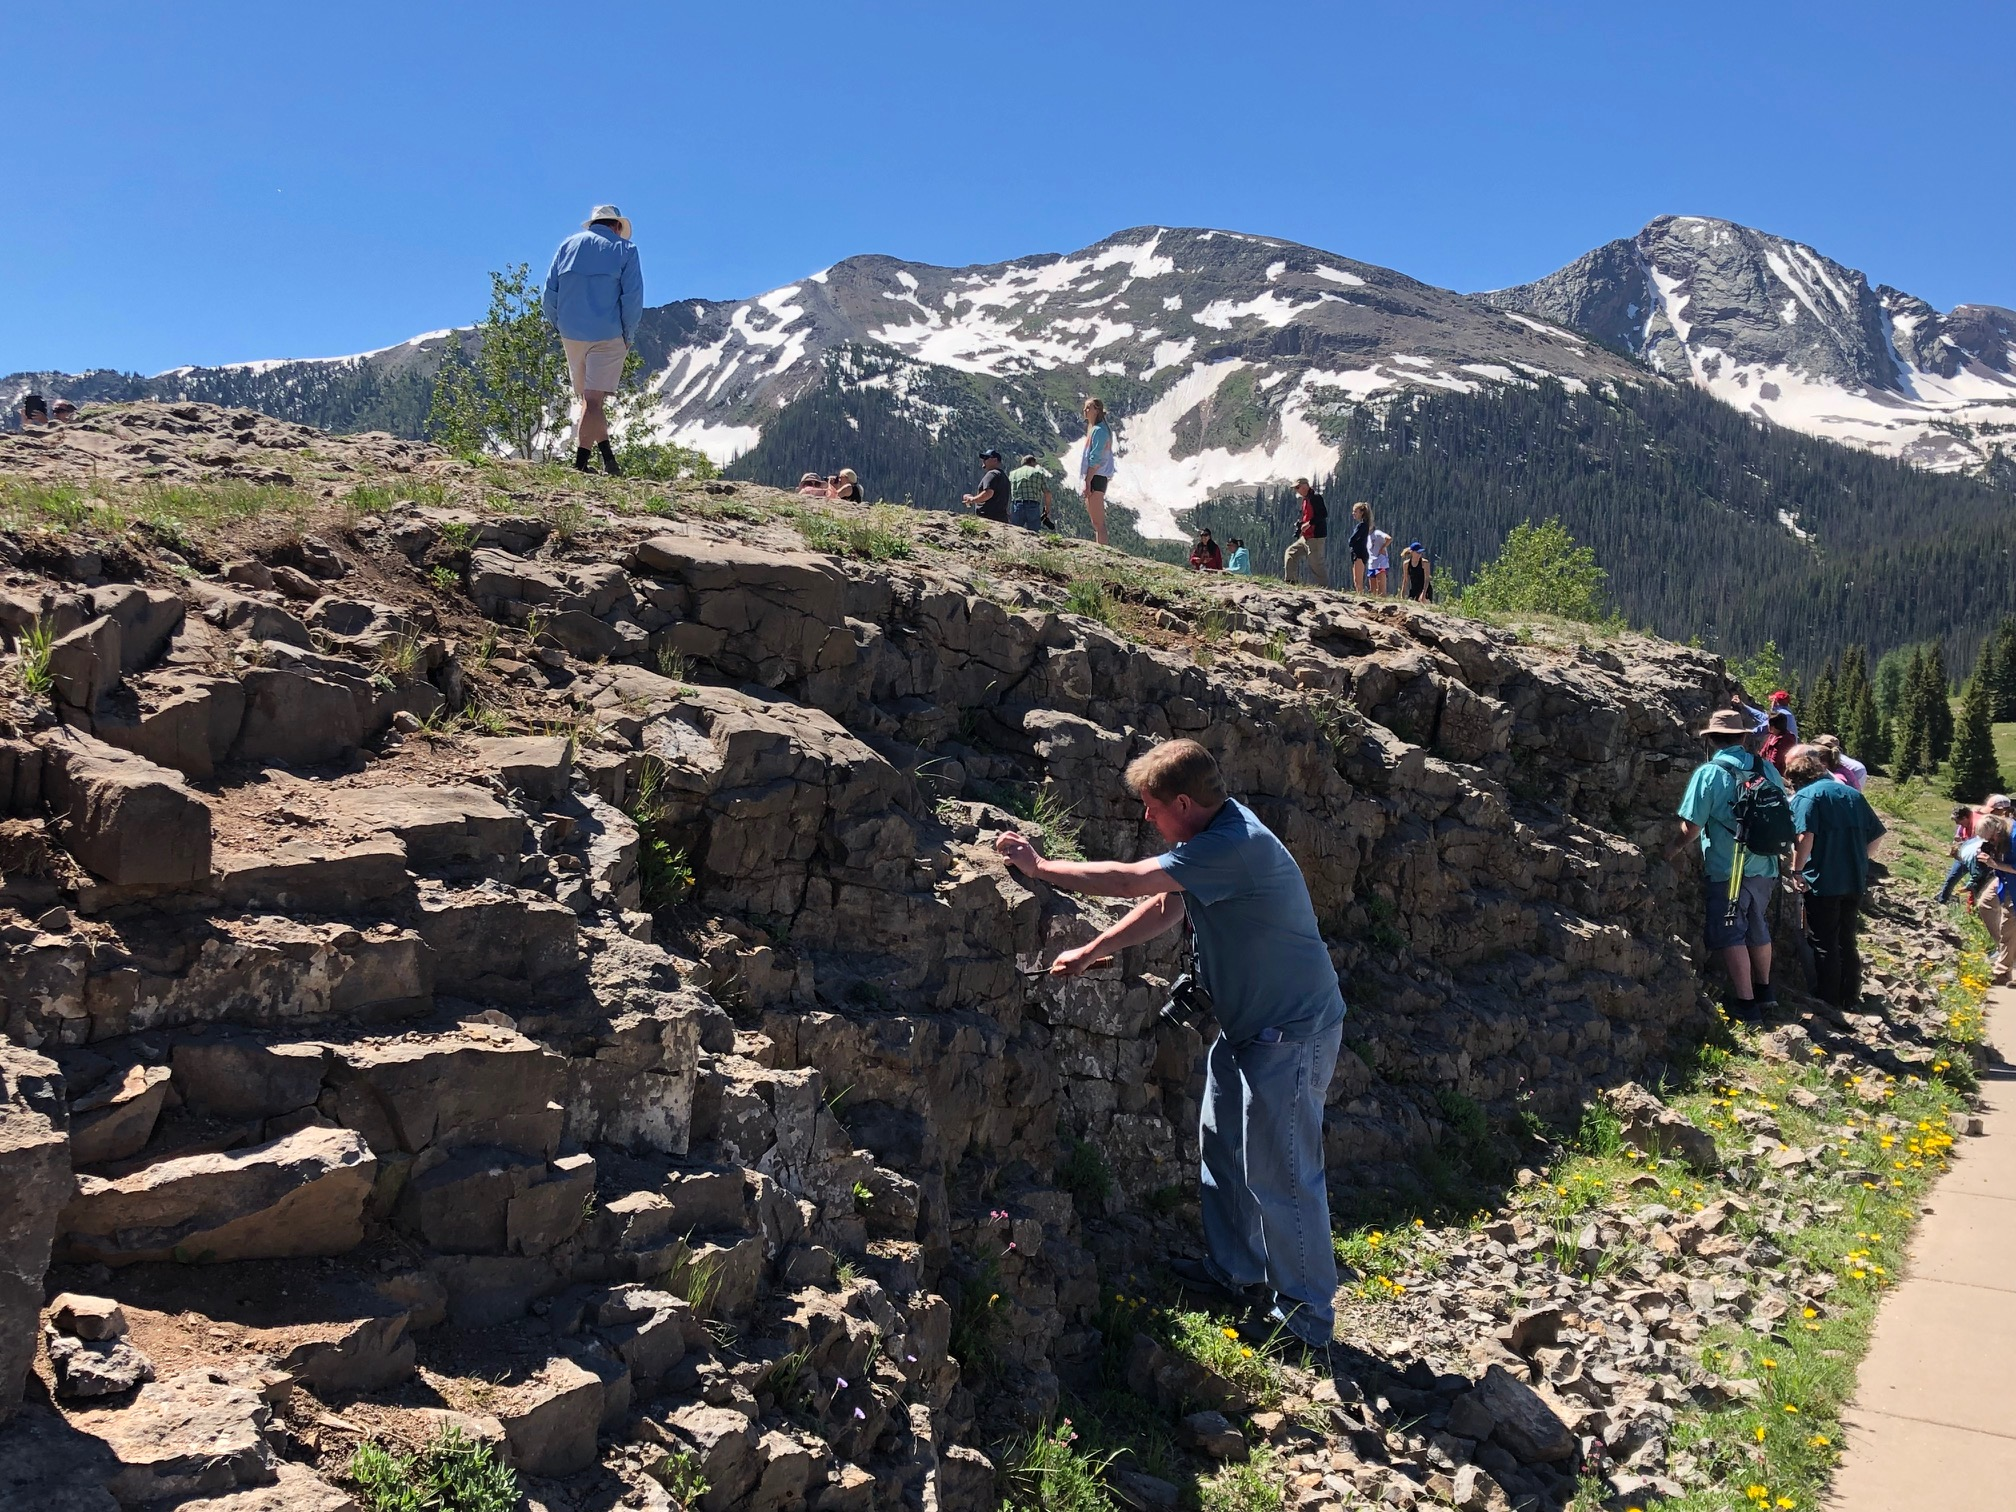 At a stop at the Molas Pass in Durango, Colo., a glacial valley in the San Juan Mountain, educators carved fossils from the surrounding landscape. (Photo by Brian Walzel, Hart Energy)